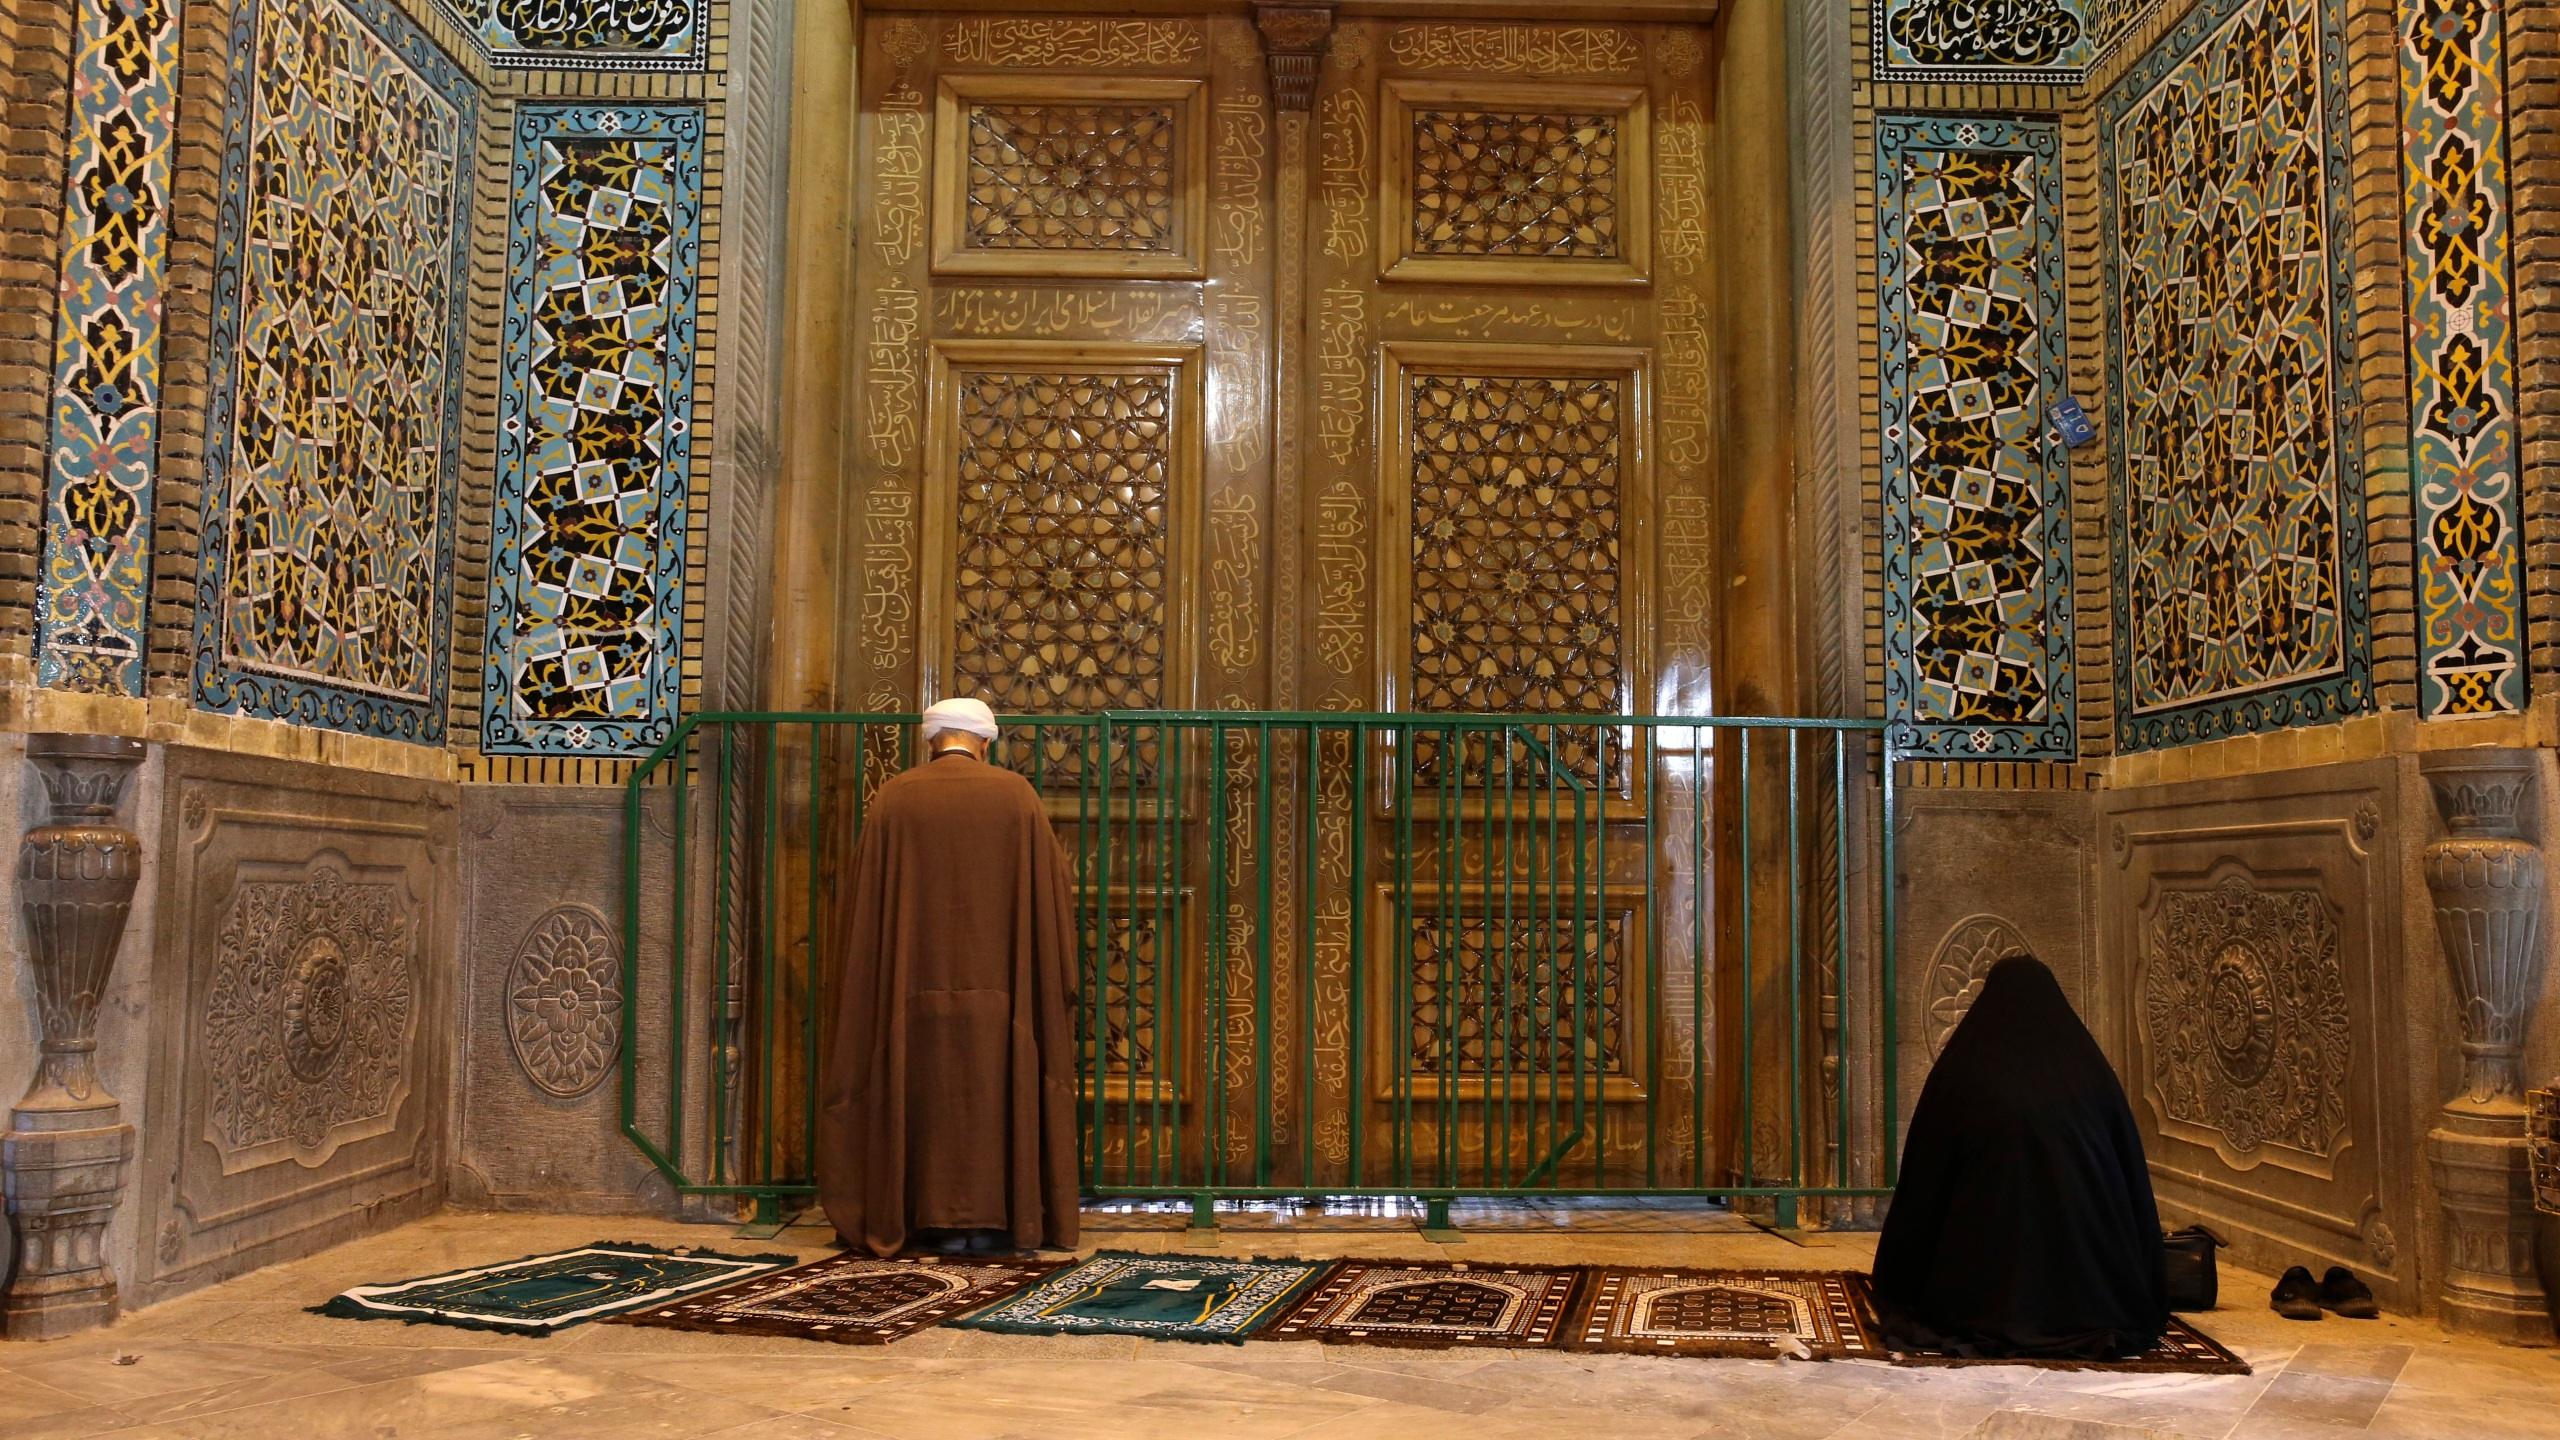 A cleric and a woman pray behind a closed door of Masoume shrine in the city of Qom, some 80 miles south of the capital Tehran, Iran on March 16, 2020. On Monday, Iran closed the Masoume shrine, a major pilgrimage site in the city of Qom, the epicenter of the country's new coronavirus outbreak. Authorities were already restricting access and barring pilgrims from kissing or touching the shrine, but it had remained open. (AP Photo)